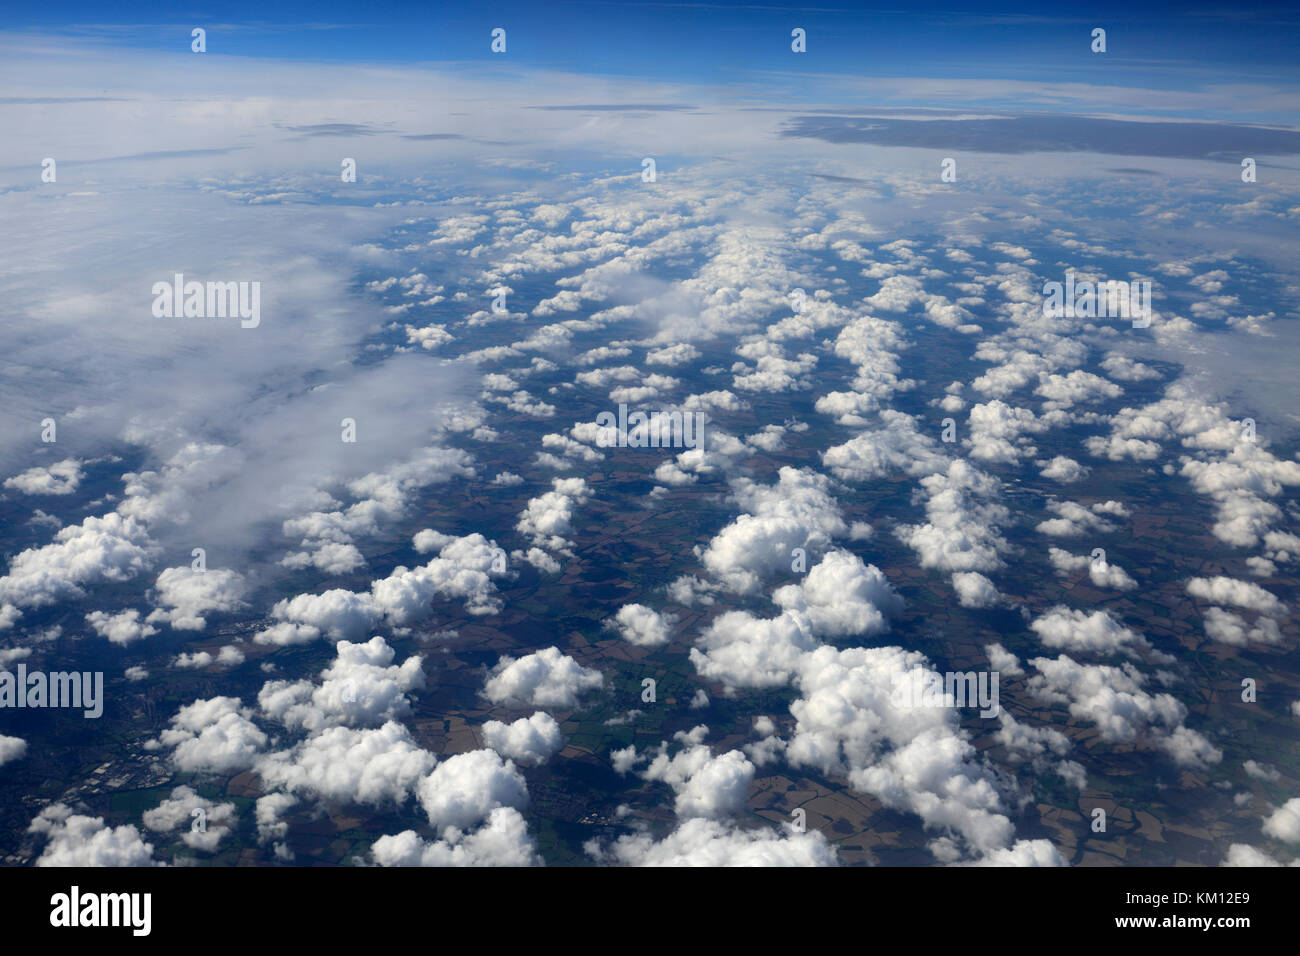 Ariel view over the Canadian Rocky mountains, British Columbia, Canada Stock Photo